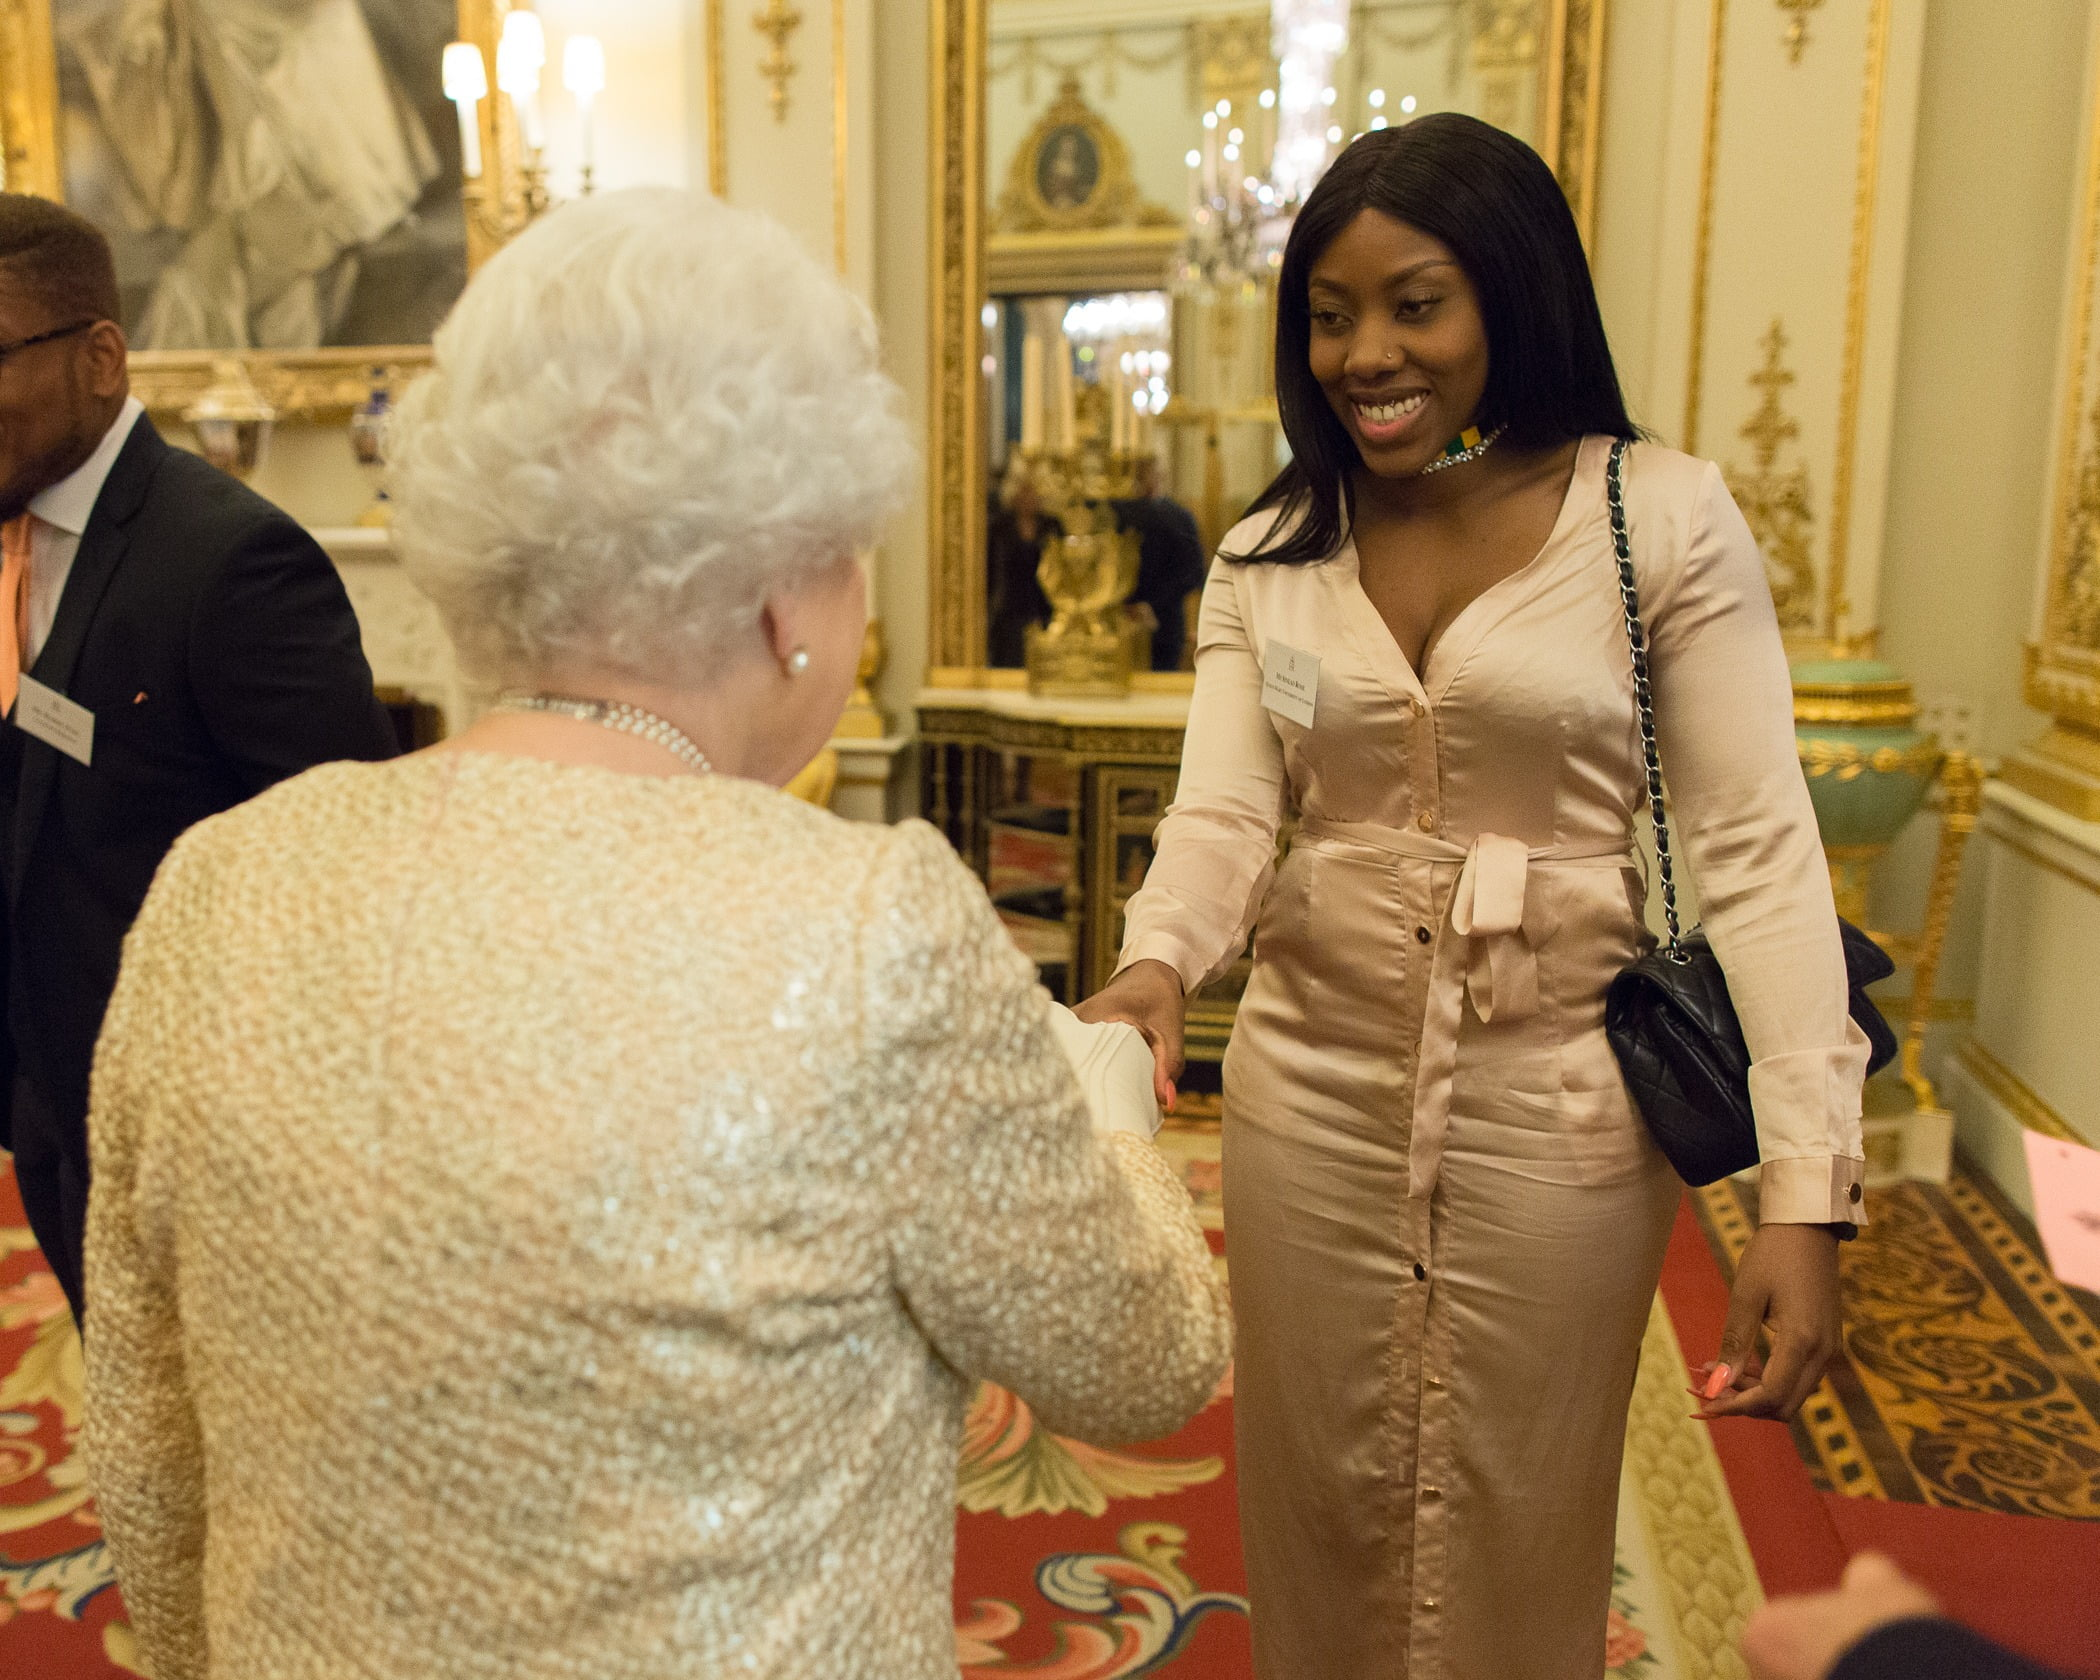 Sinead Rose was invited by Queen Elizabeth to attend the Commonwealth Reception in February